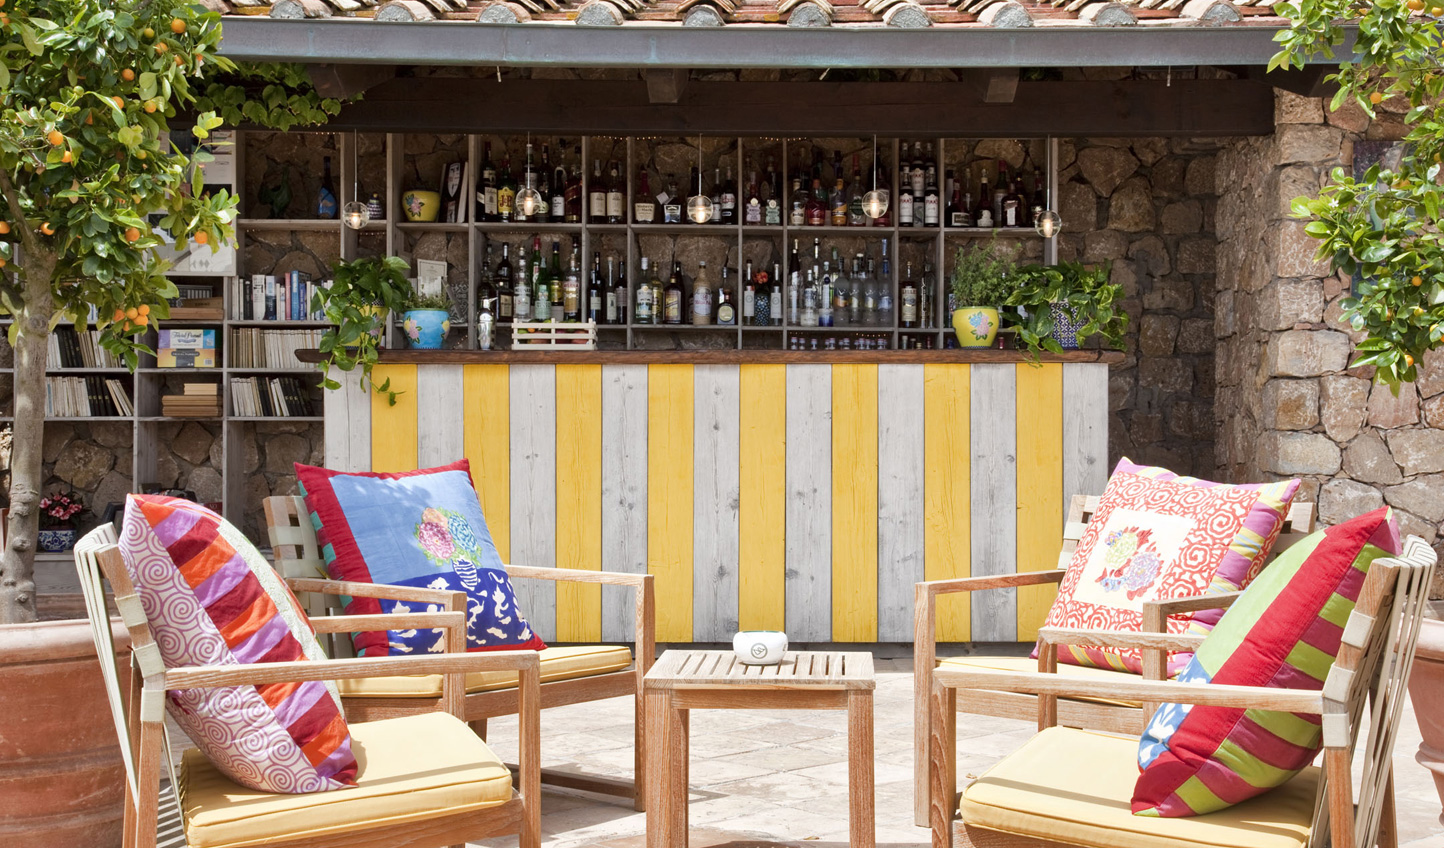 The perfect spot for an aperitivo